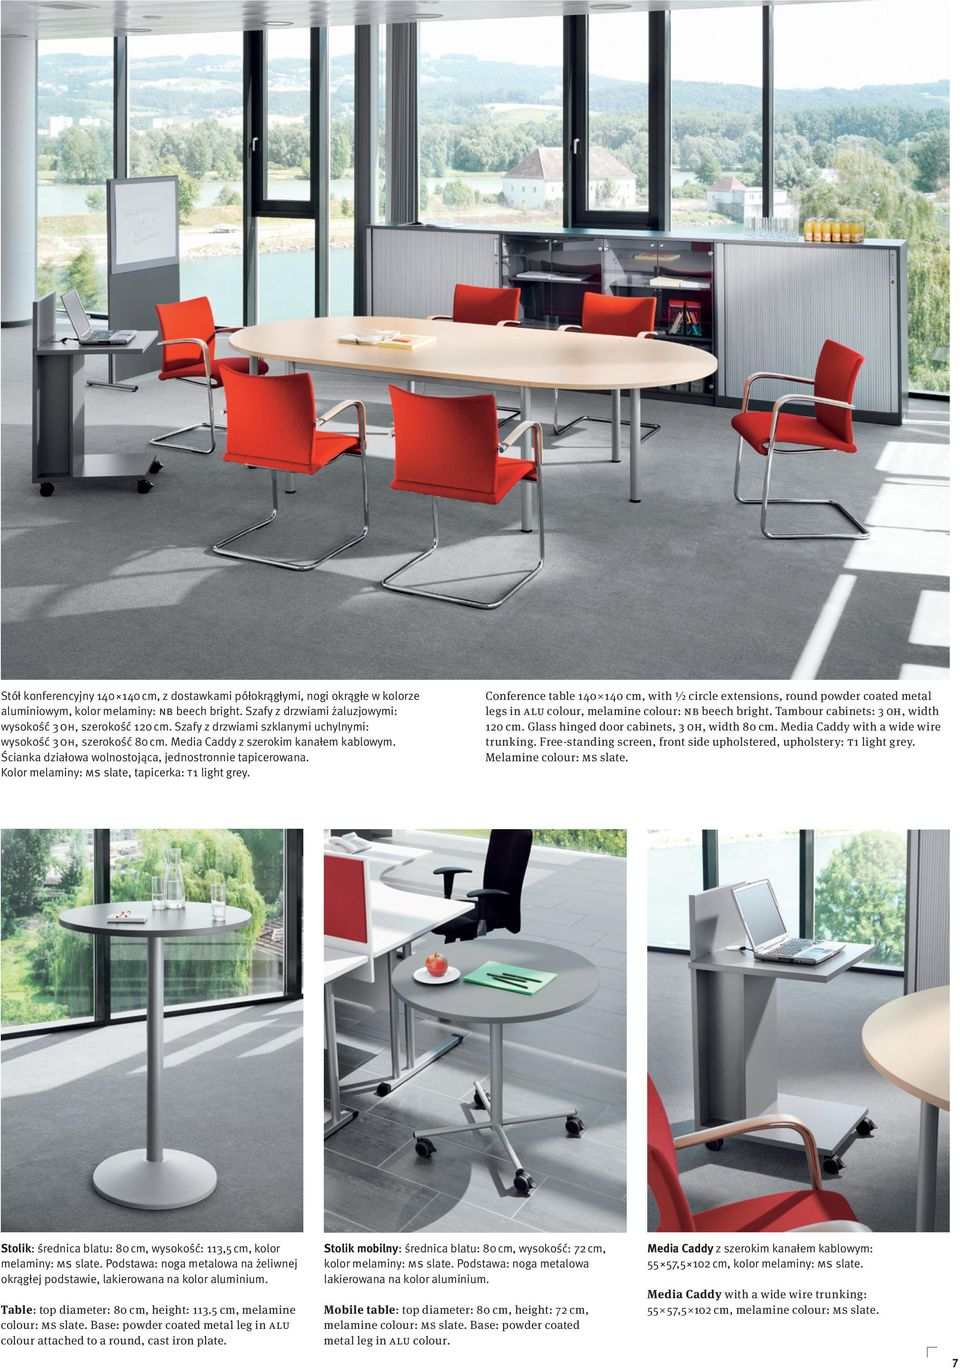 Kolor melaminy: MS slate, tapicerka: T1 light grey. Conference table 140 140 cm, with ½ circle extensions, round powder coated metal legs in ALU colour, melamine colour: NB beech bright.